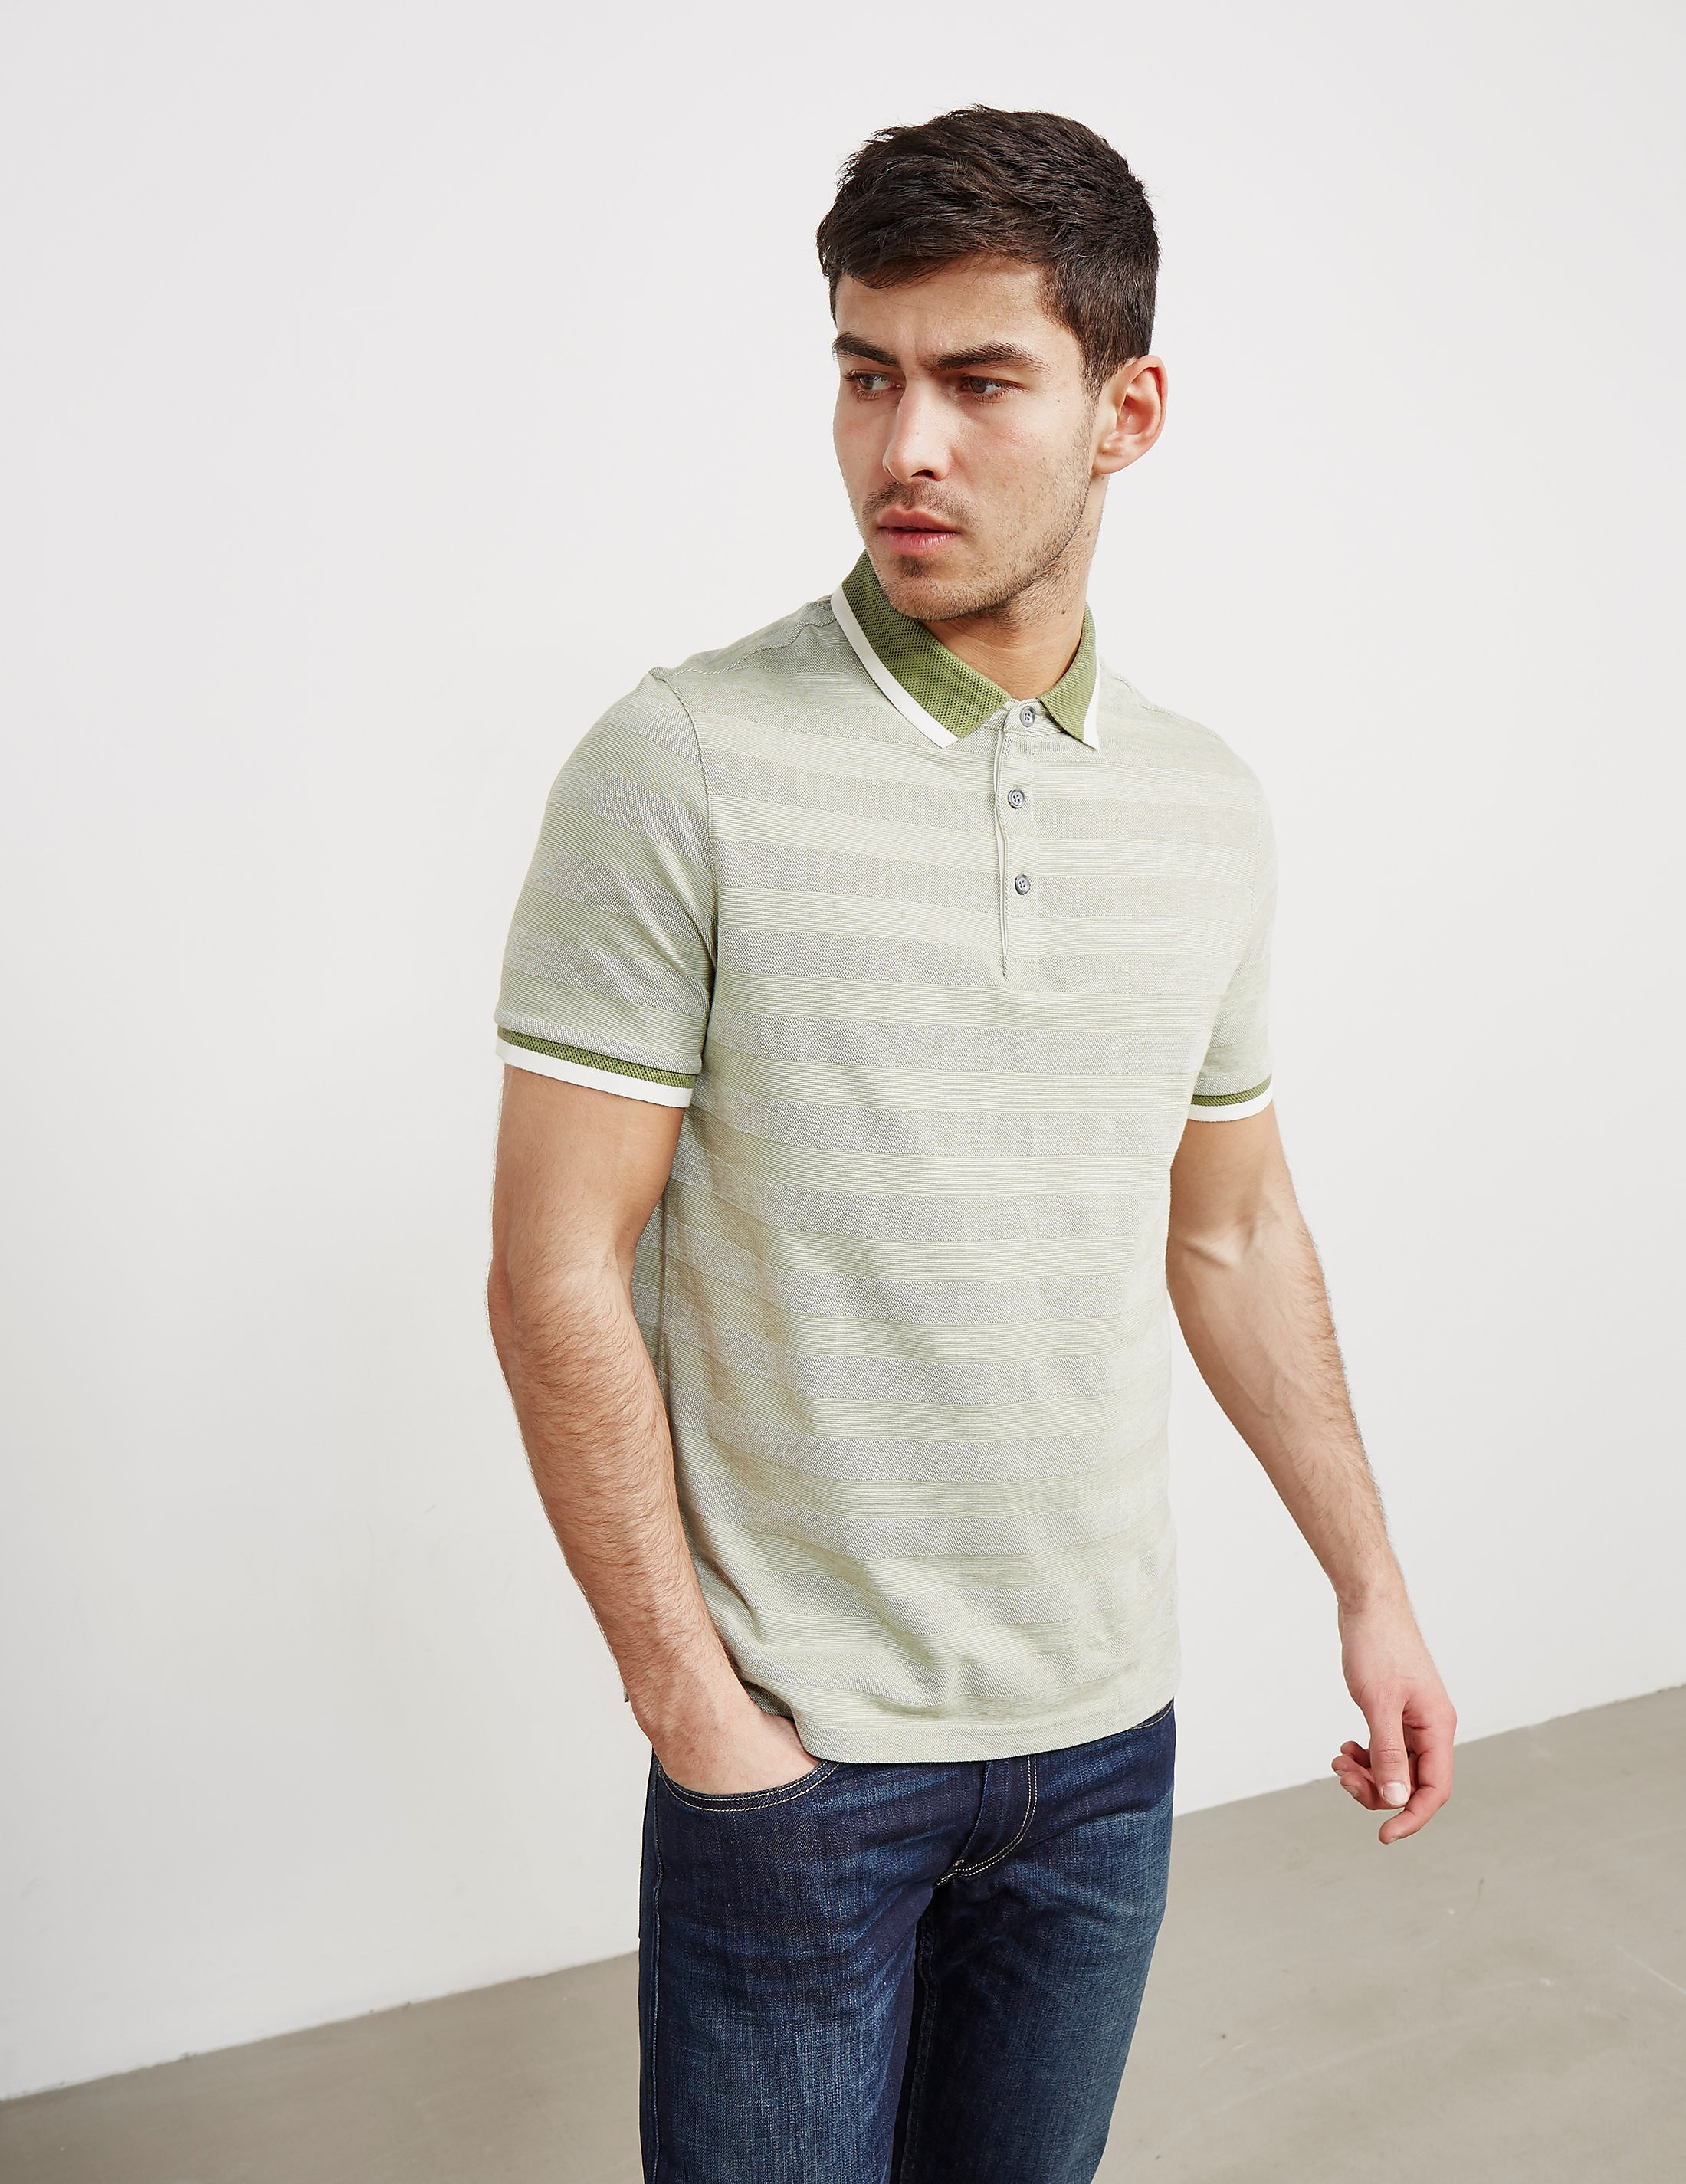 Michael Kors Knitted Stripe Short Sleeve Polo Shirt